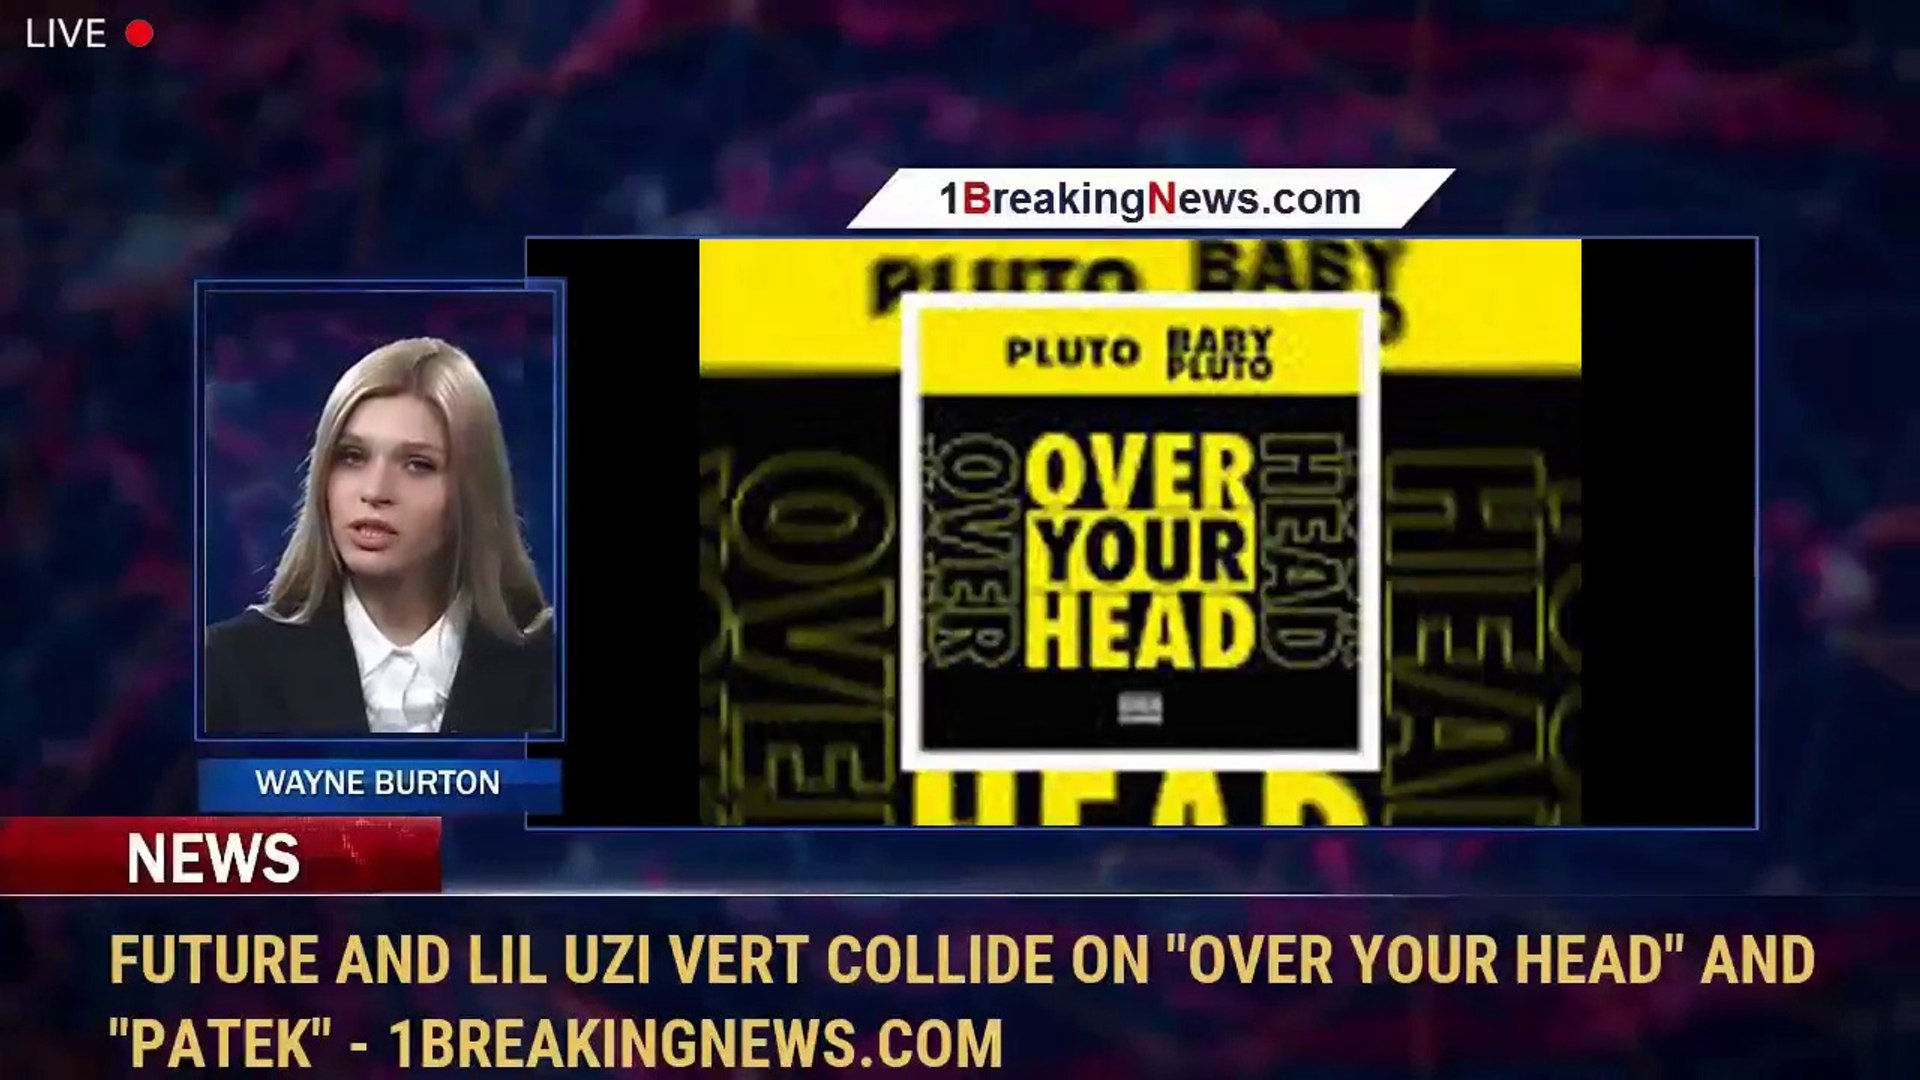 Future And Lil Uzi Vert Collide On Over Your Head And Patek 1breakingnews Com Video Dailymotion If you're looking for the best lil uzi vert wallpapers then wallpapertag is the place to be. future and lil uzi vert collide on over your head and patek 1breakingnews com